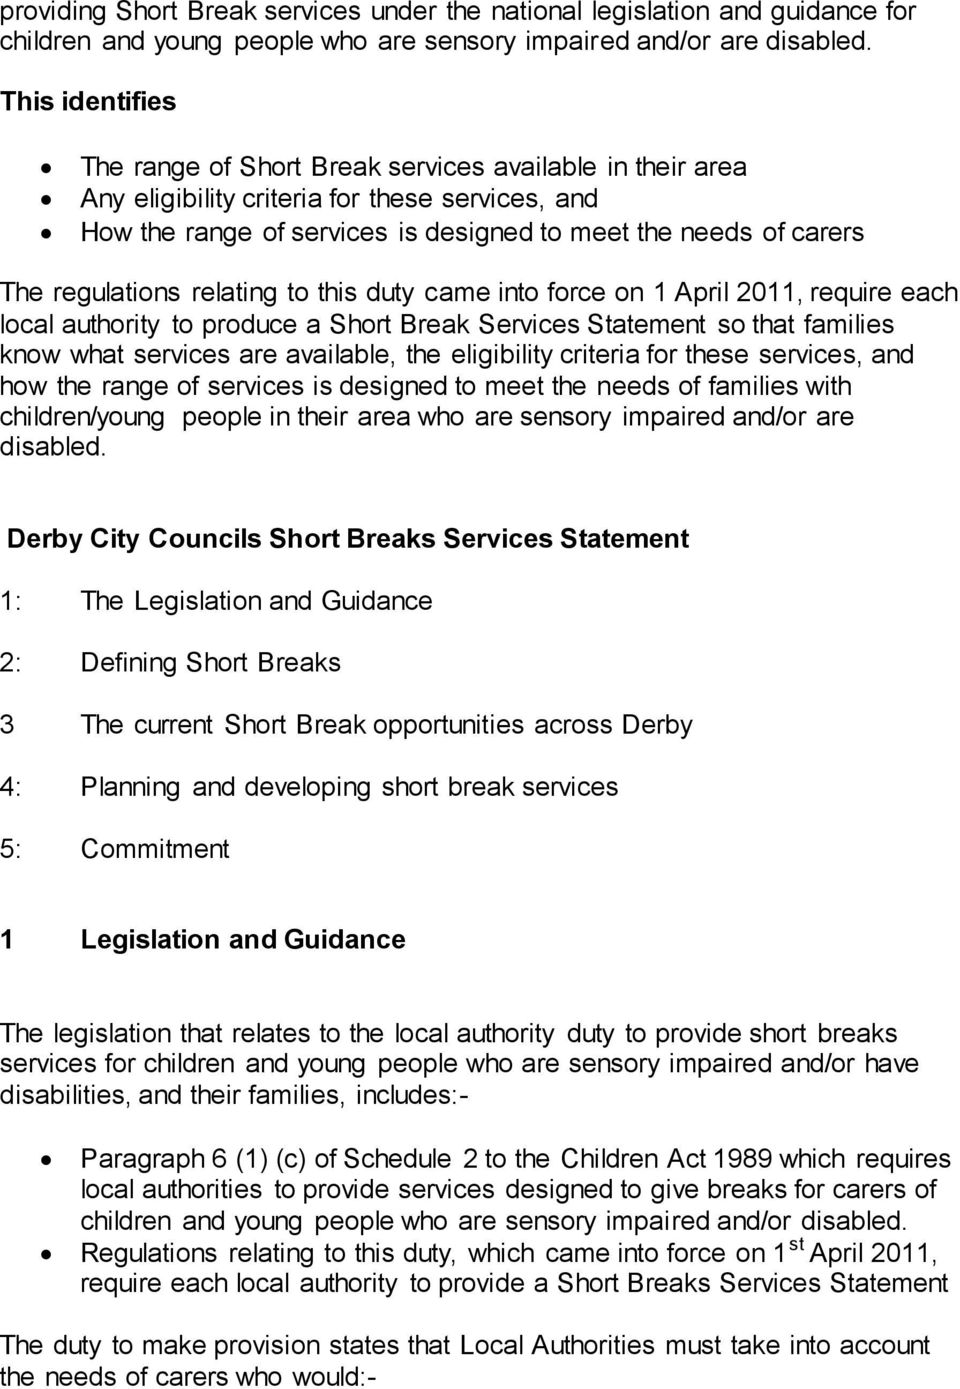 regulations relating to this duty came into force on 1 April 2011, require each local authority to produce a Short Break Services Statement so that families know what services are available, the